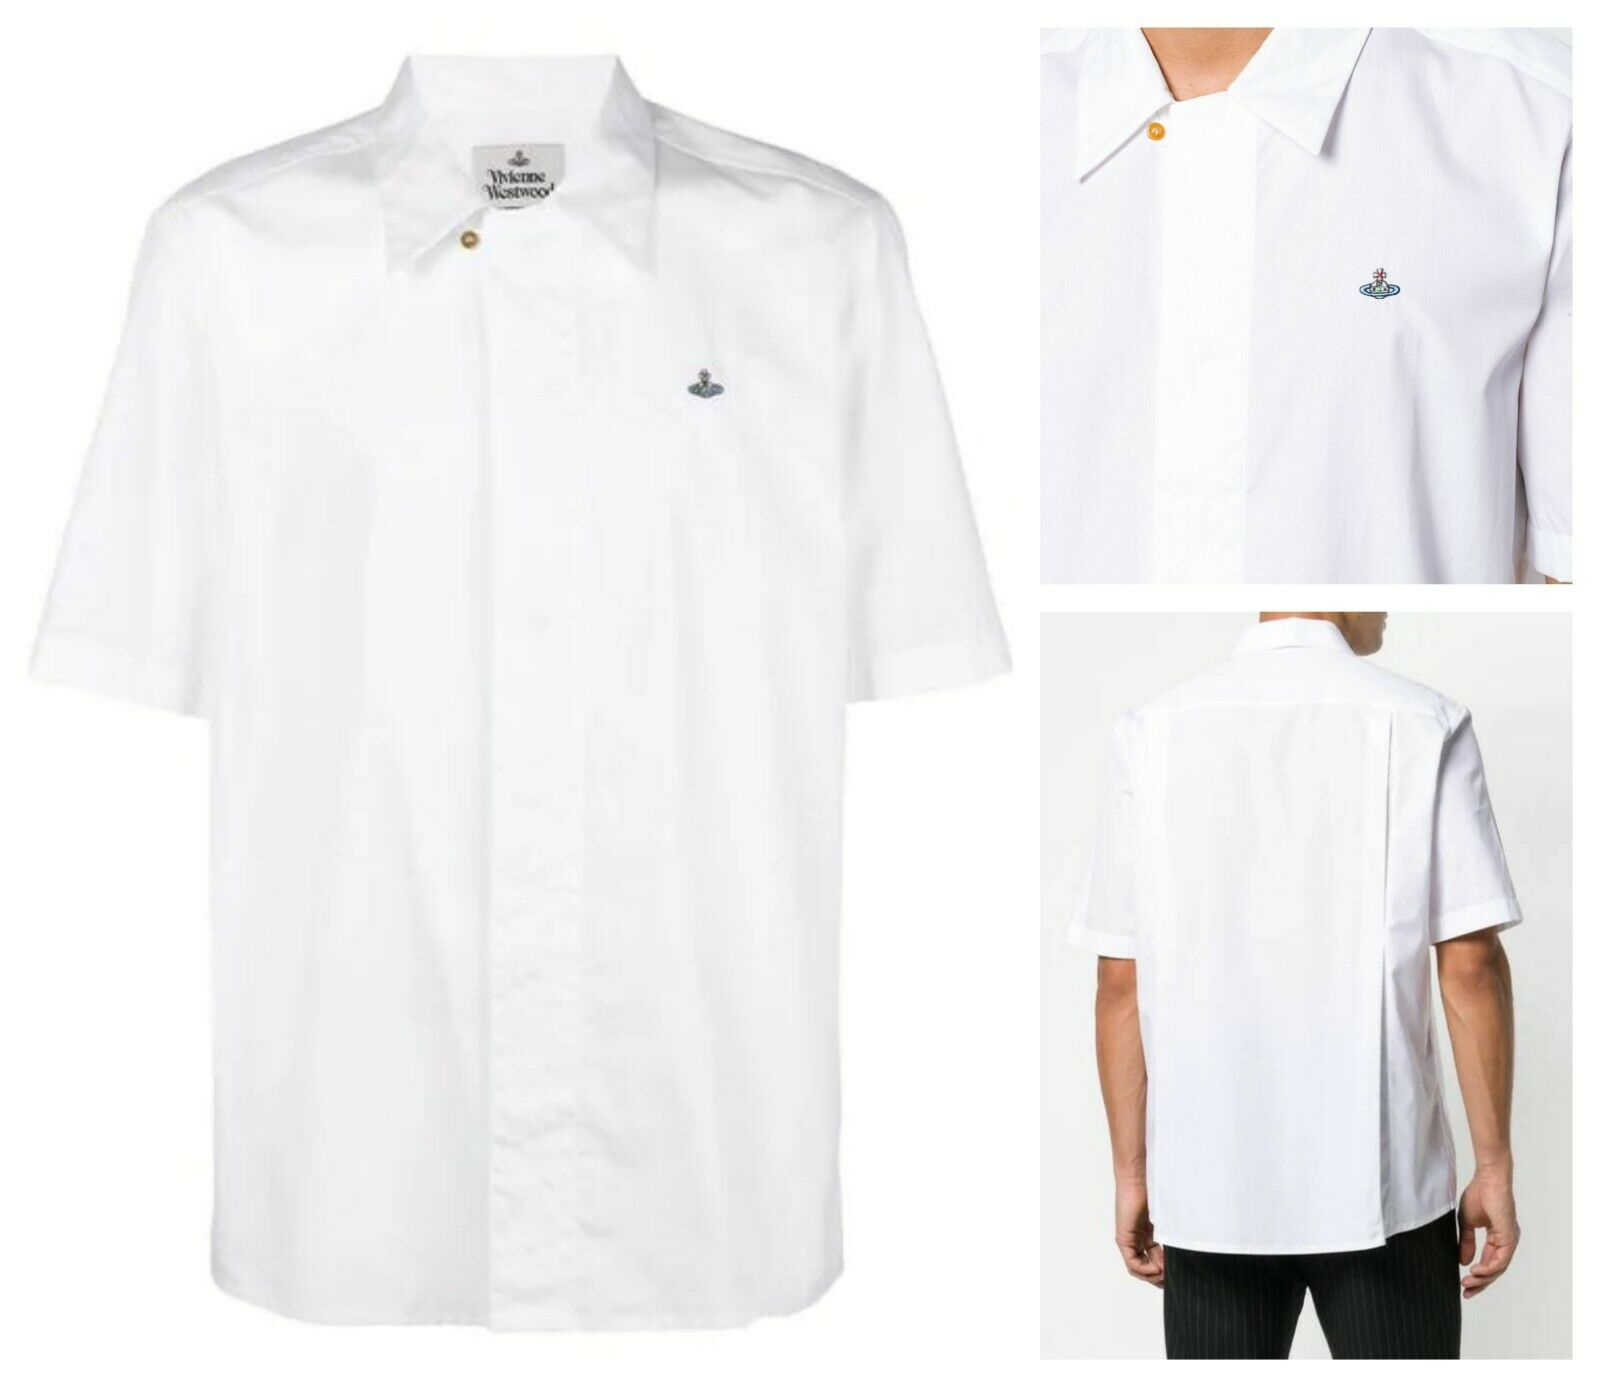 AUTHENTIC VIVIENNE WESTWOOD WHITE ORB SHORT SLEEVES SHIRT. IT 46 (SMALL)